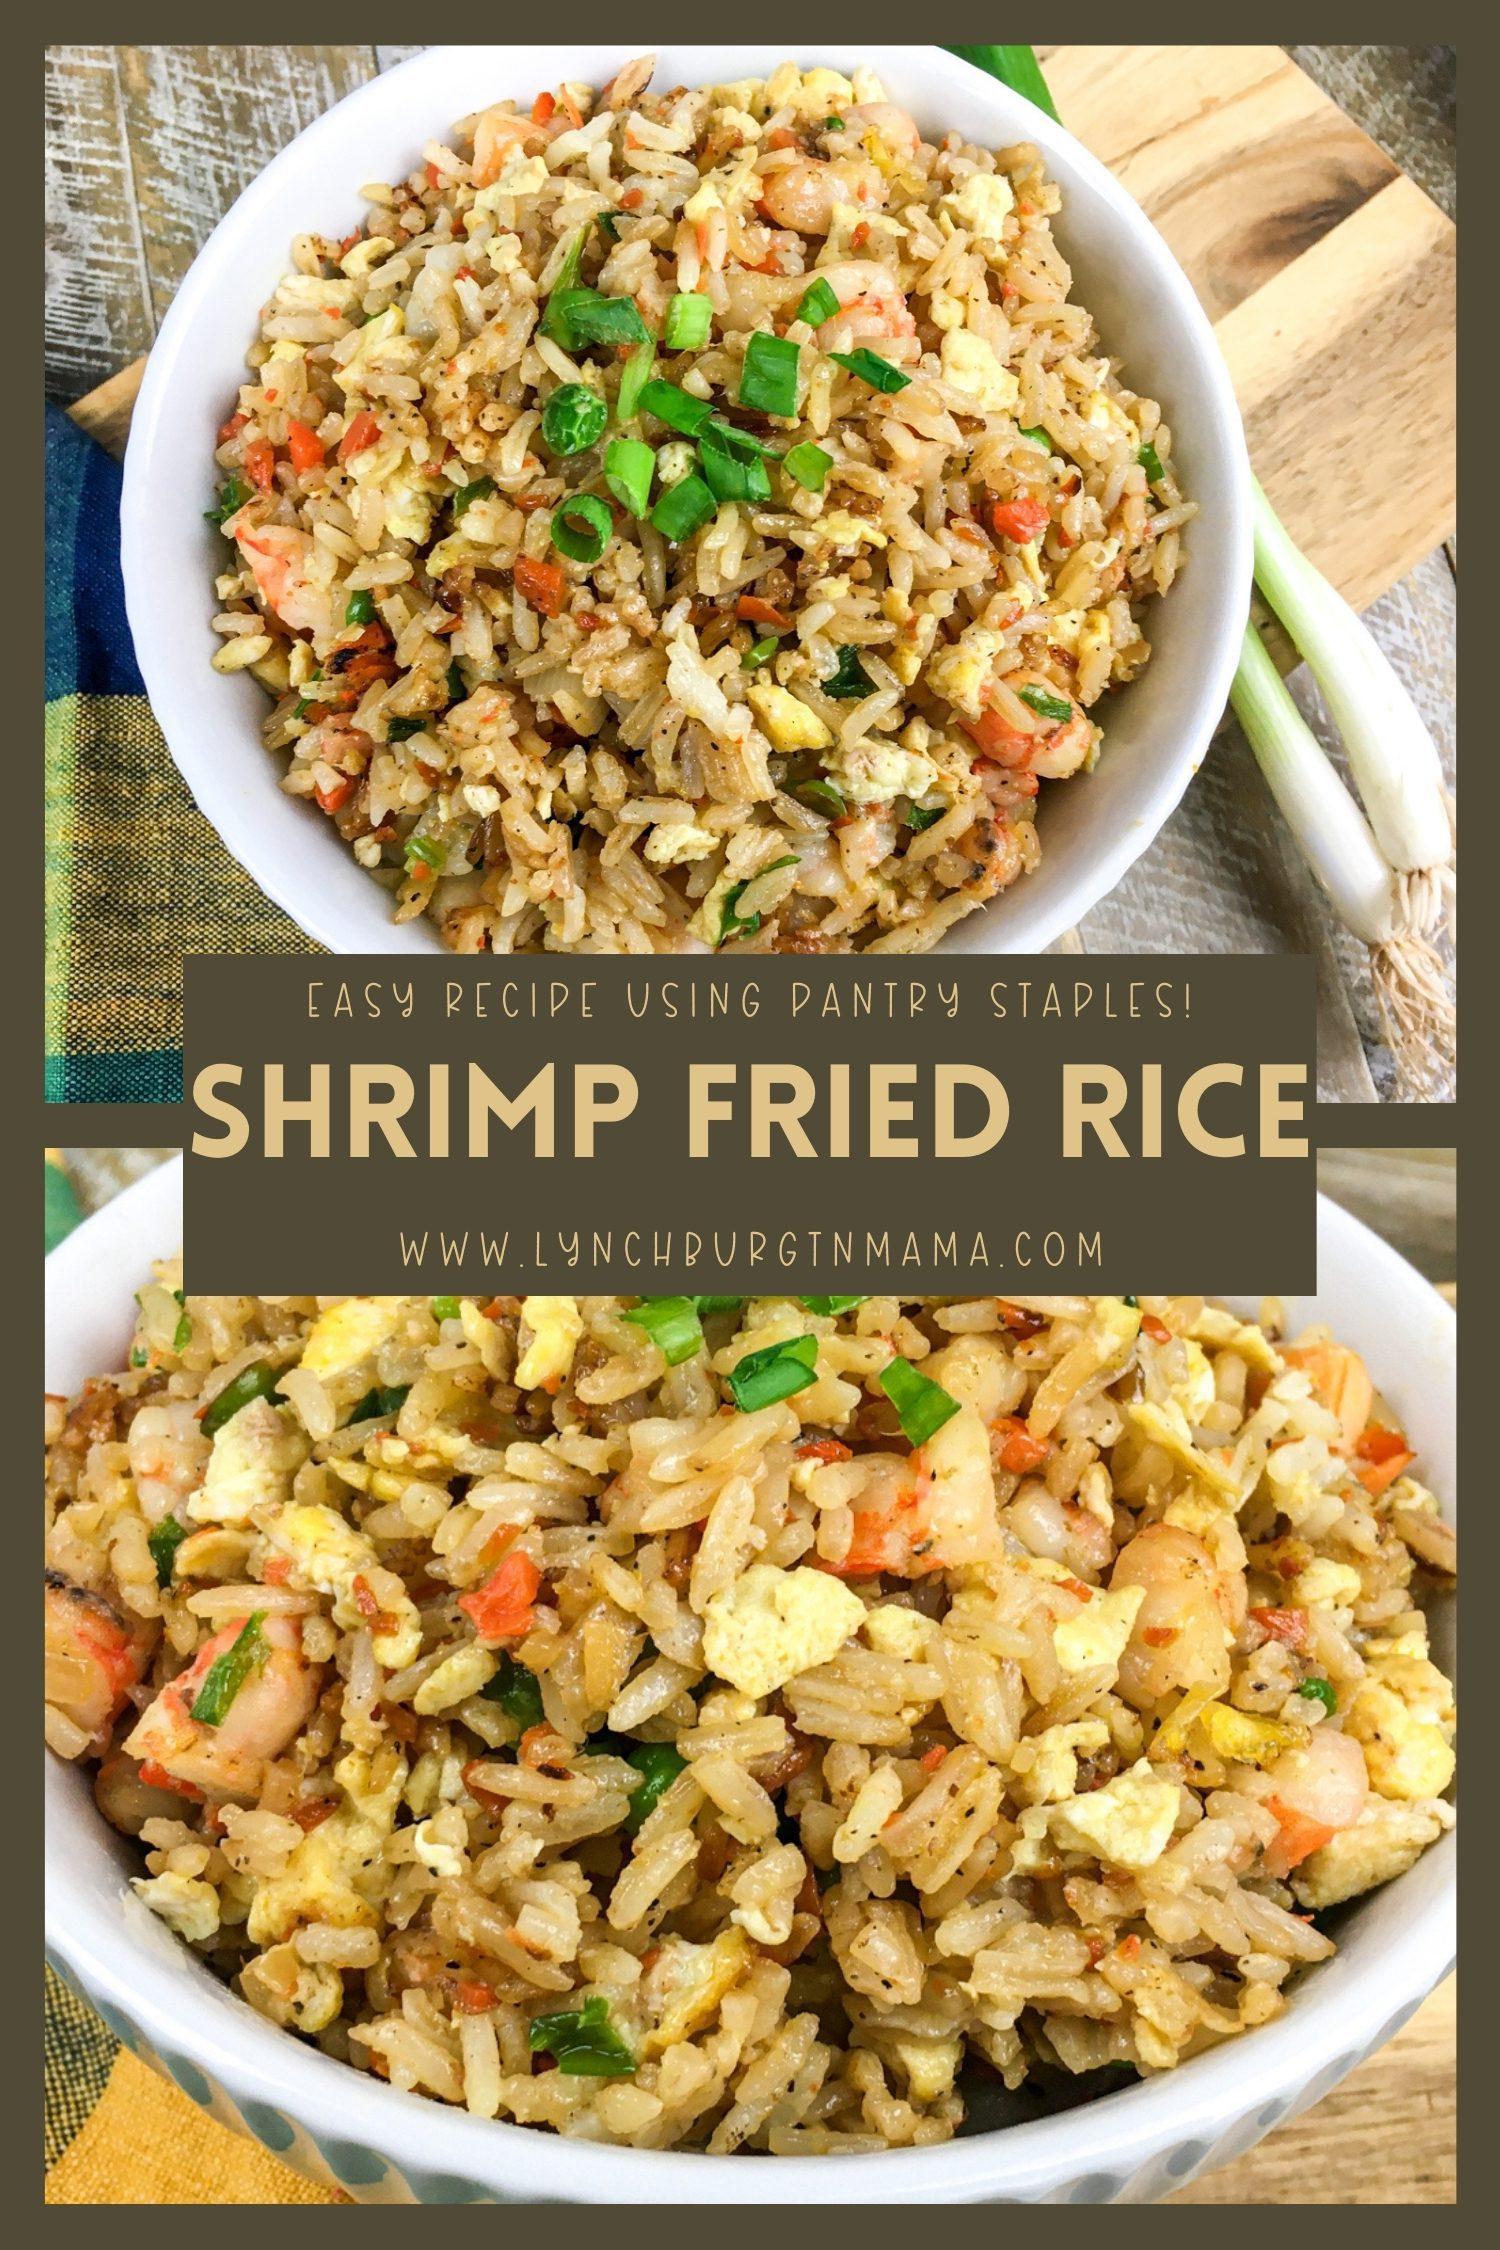 Shrimp Fried Rice is a classic dish that can be used as a main dish or side dish! The combination of rice, green peas, carrots, onions, and seasonings use pantry staples for a tasty meal!